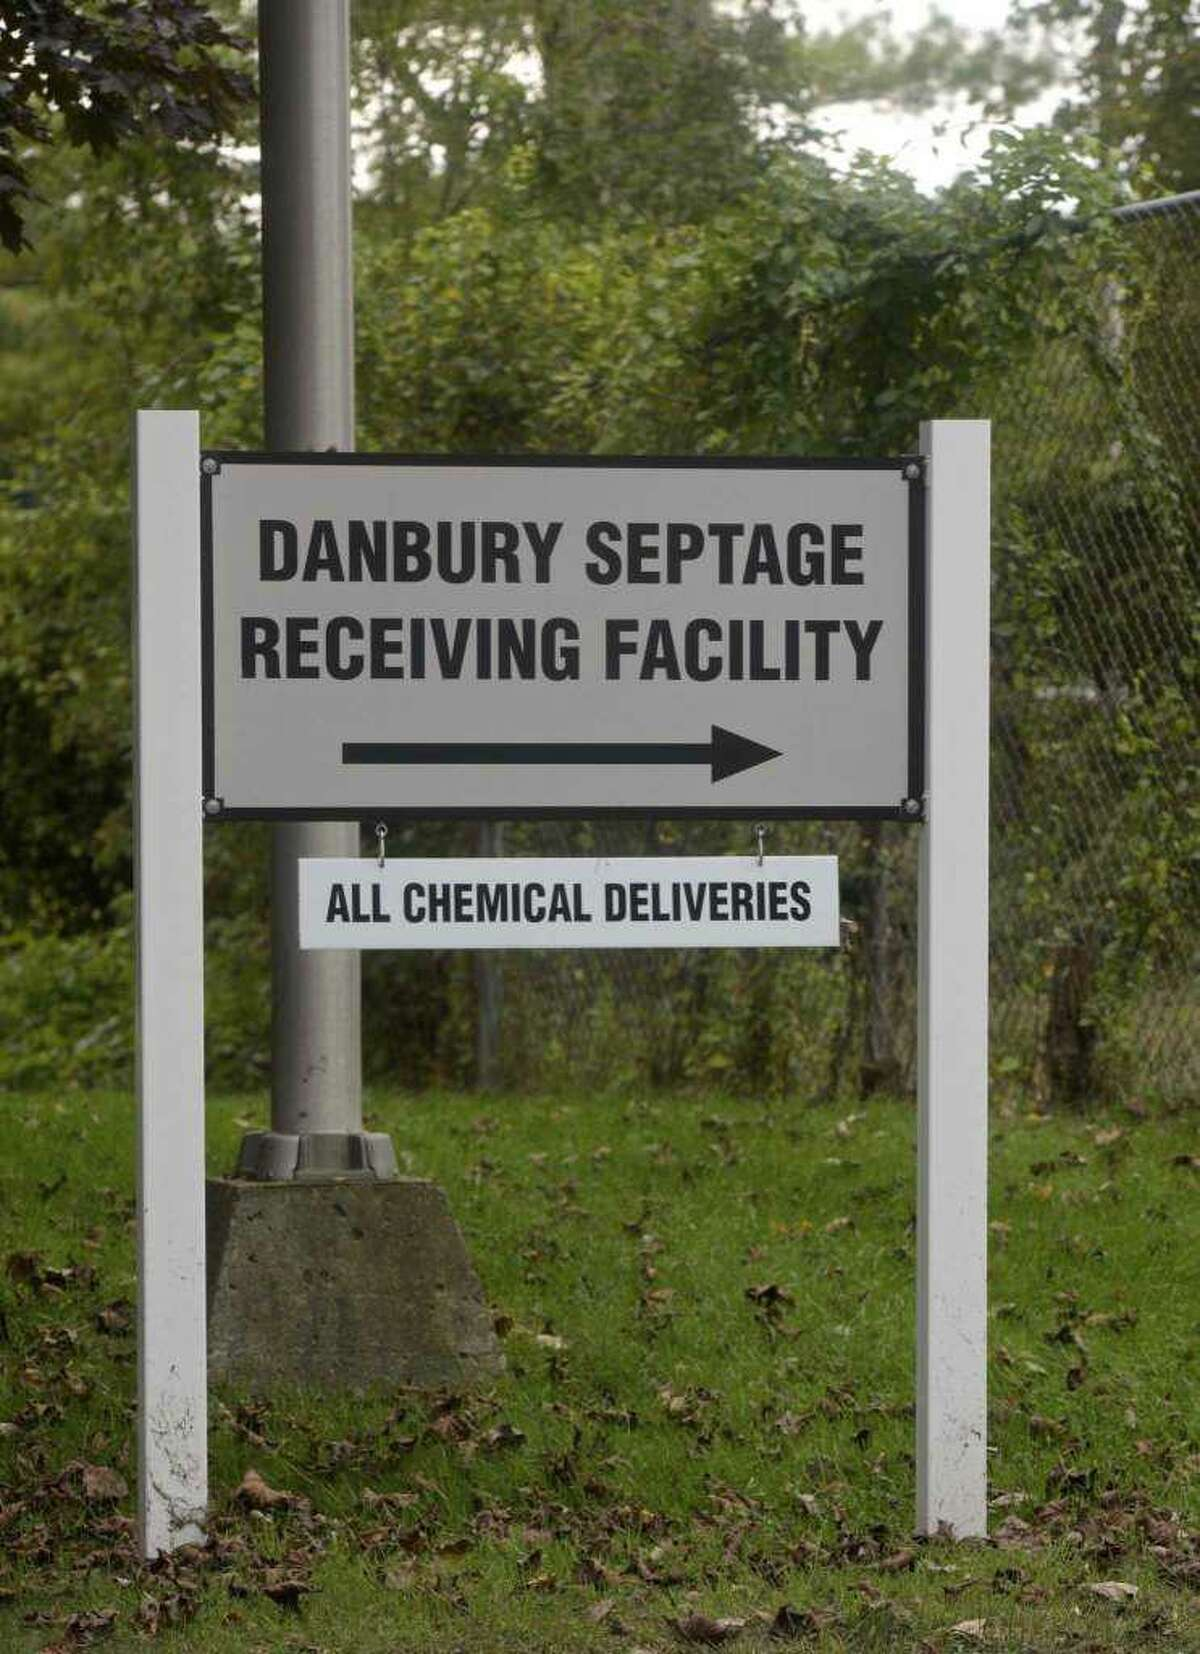 The sign at the wastewater treatment facility may need to change since the facility is being renamed the